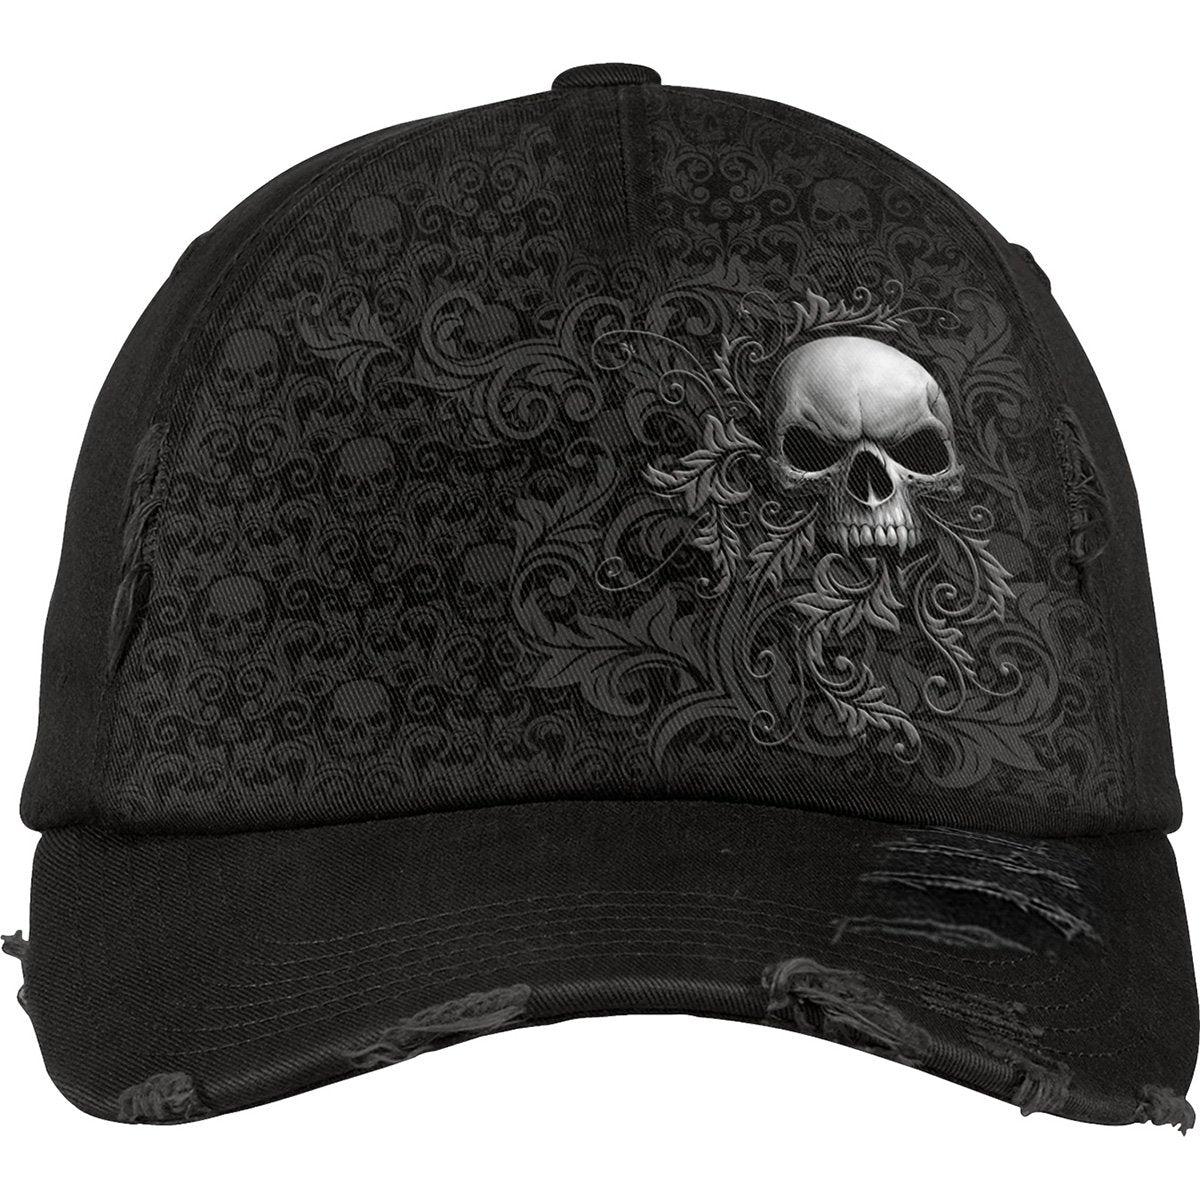 SKULL SCROLL - Distressed Baseball Cap - Rebels Depot